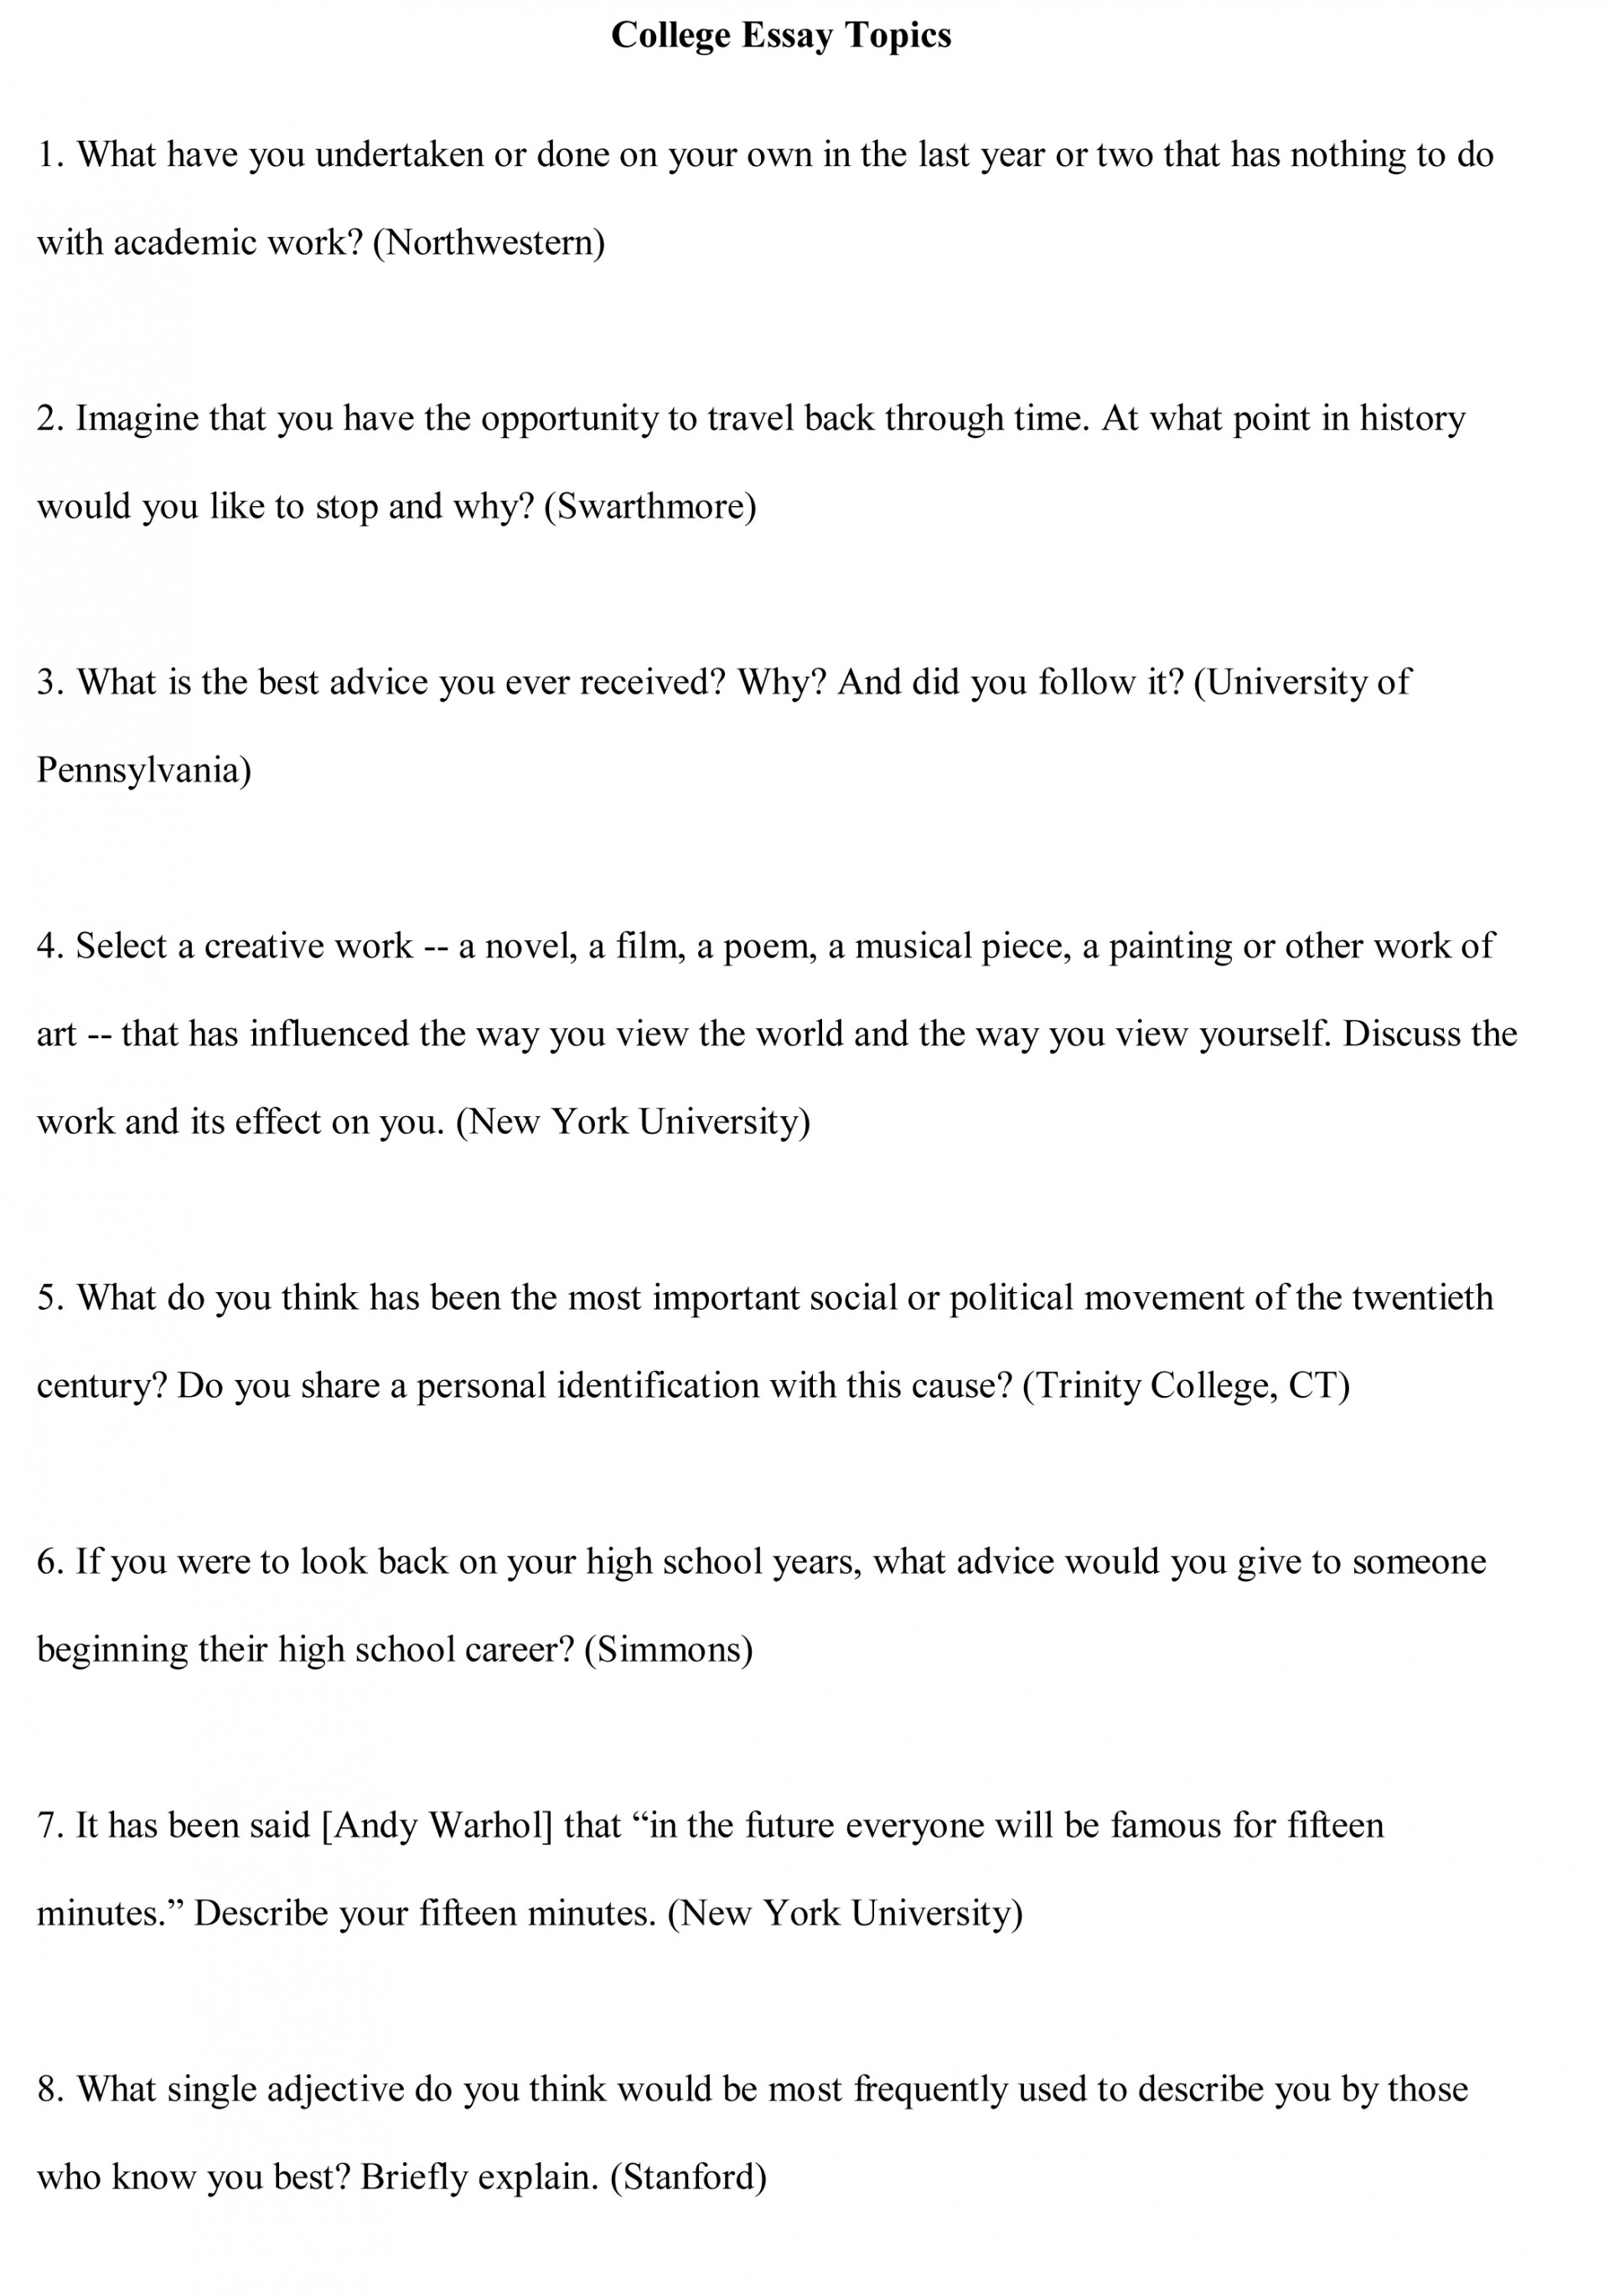 005 Essay Prompts College Topics Free Sample1 Incredible Prompt Examples Writing For 4th Grade Expository High School 1920